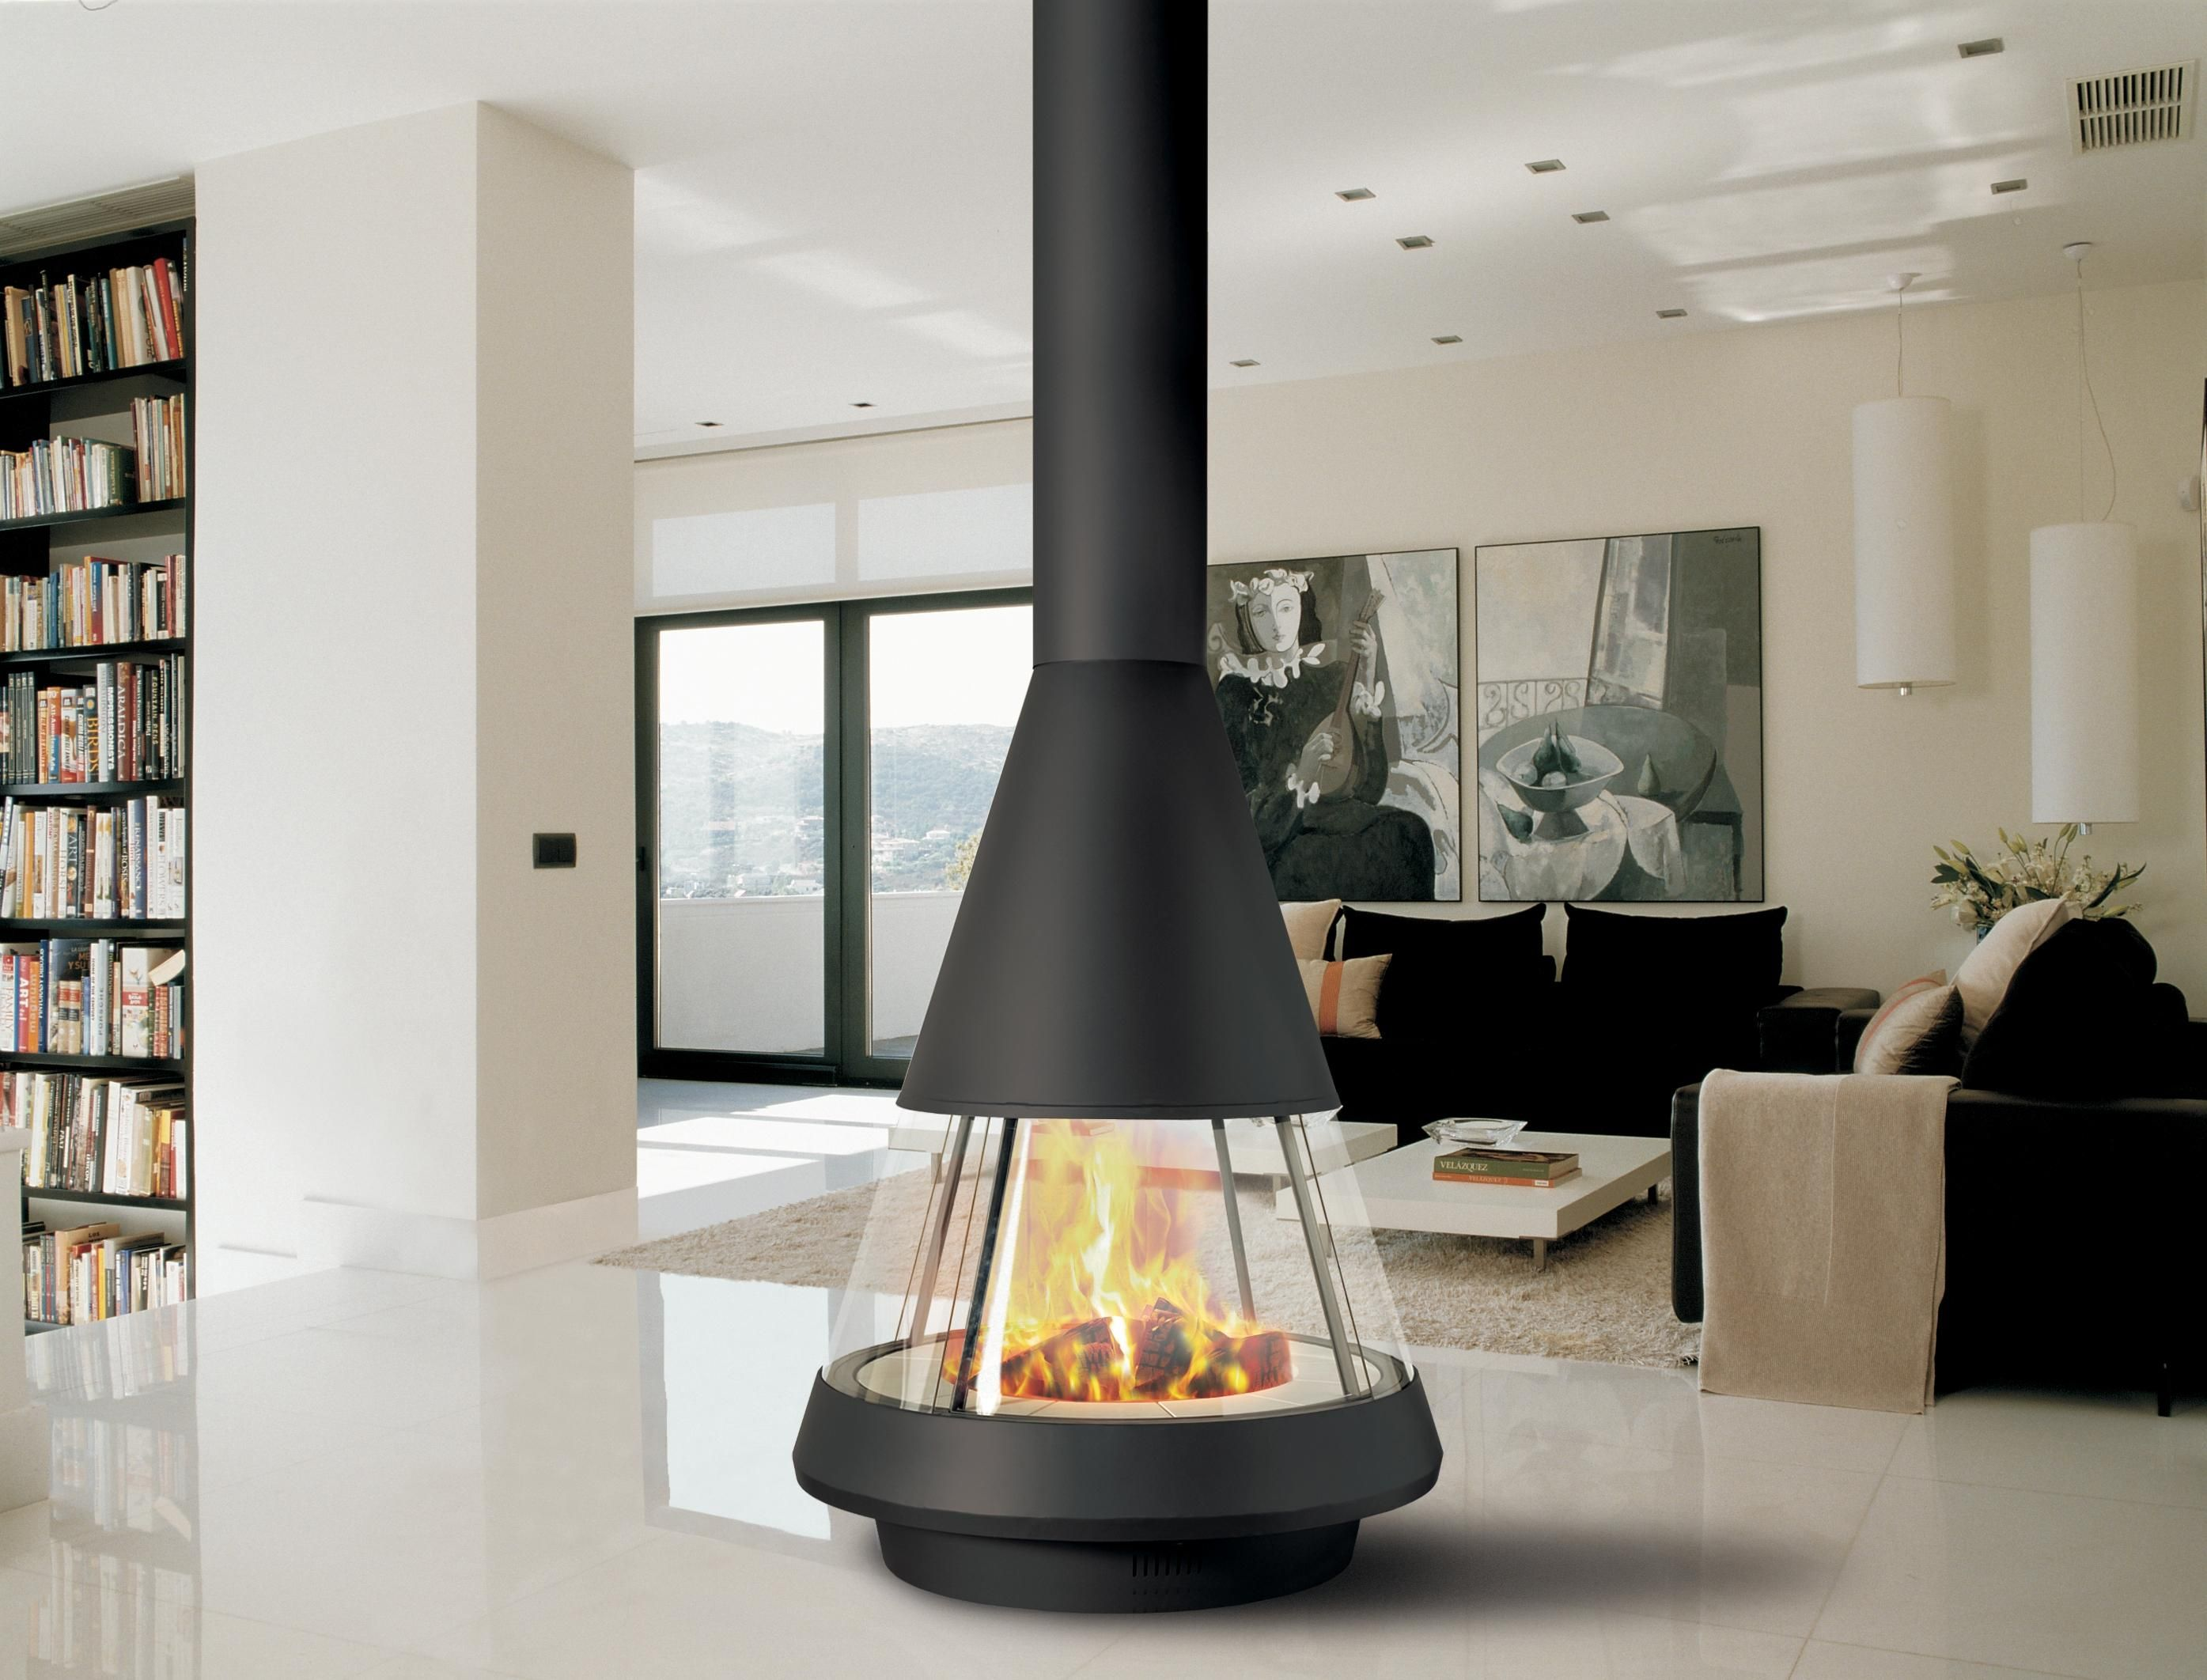 Central fireplace by hergom with a 360 view of the fire by the fireplace pinterest wood - Chimeneas de lena leroy merlin ...